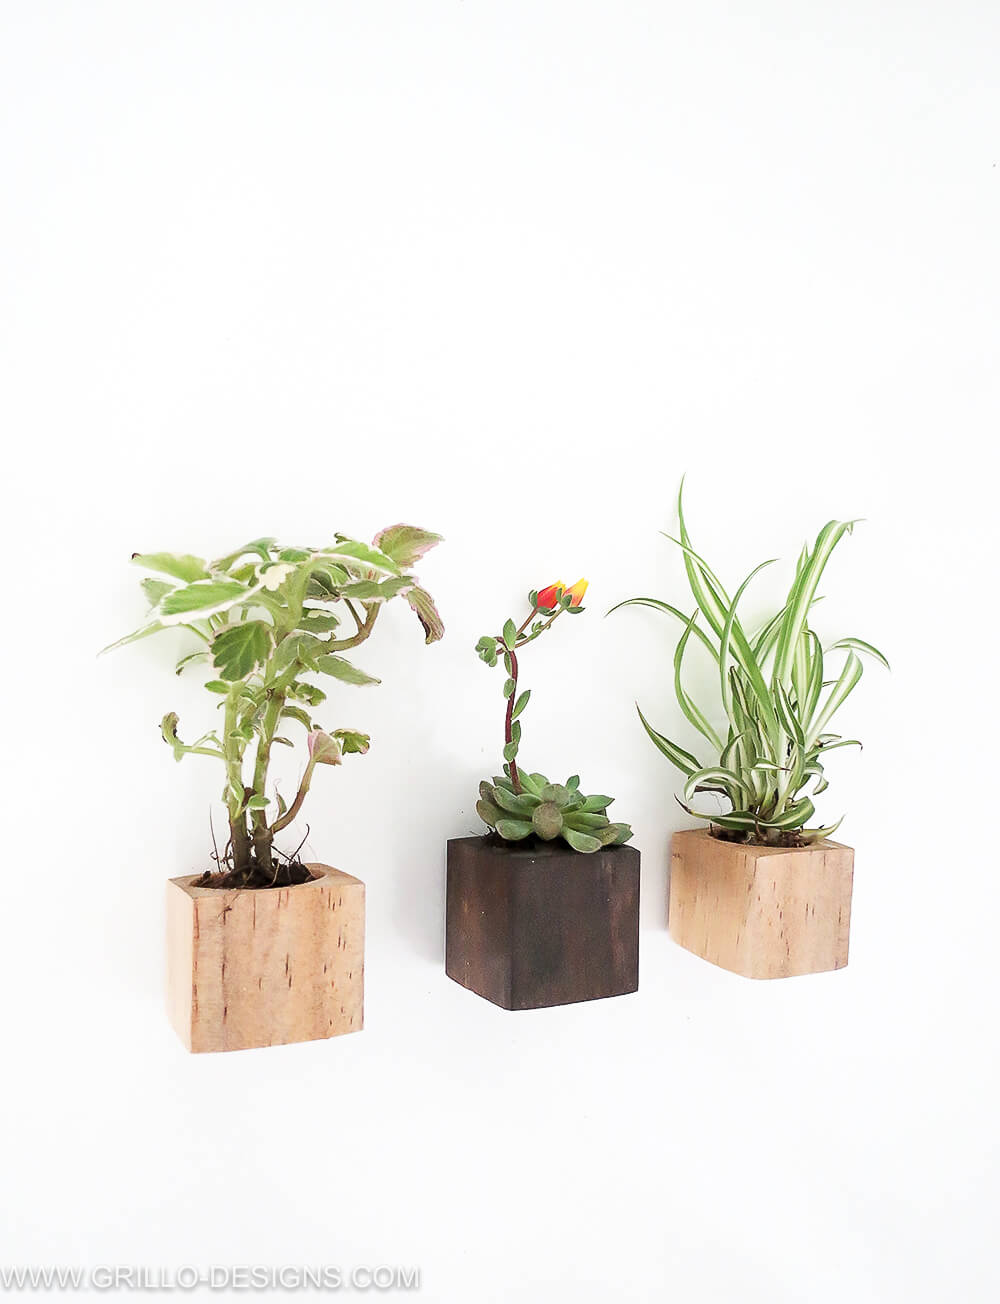 Tutorial on how to make diy magnet planters / grillo designs